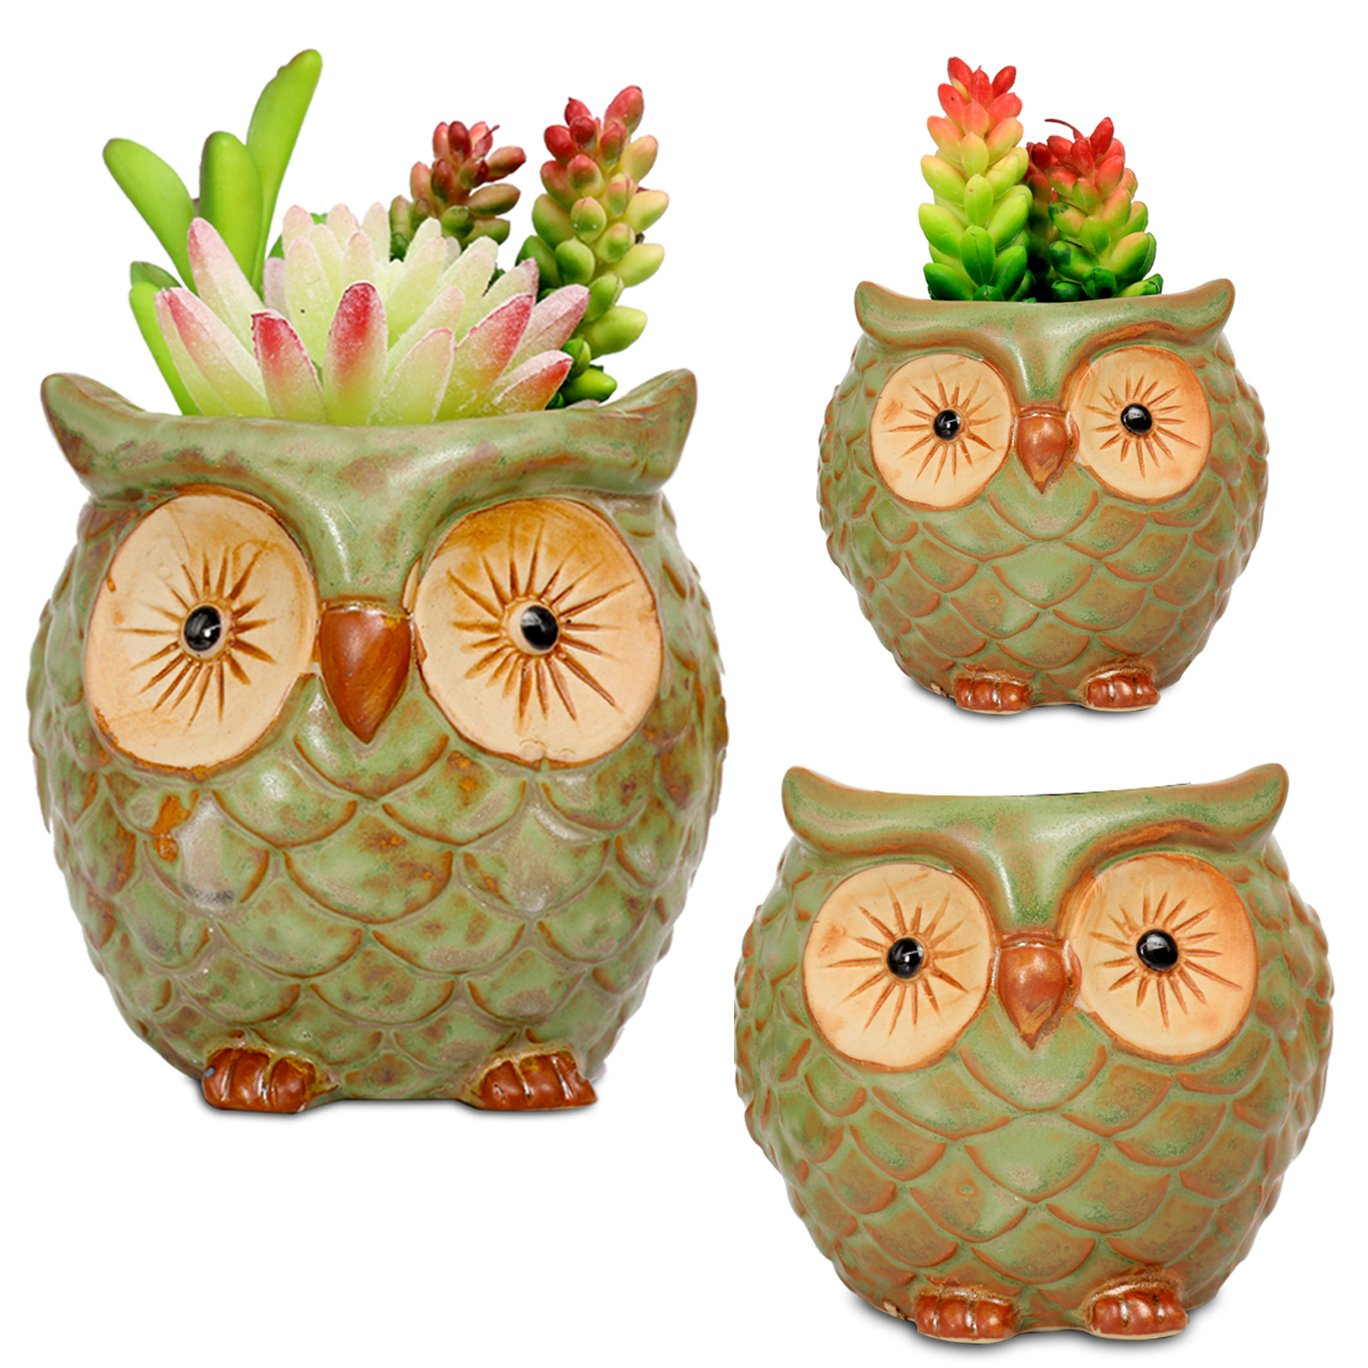 ROSE CREATE 3pcs 3in / 4in / 4.5in Owl Flower Pots by ROSE CREATE (Image #1)